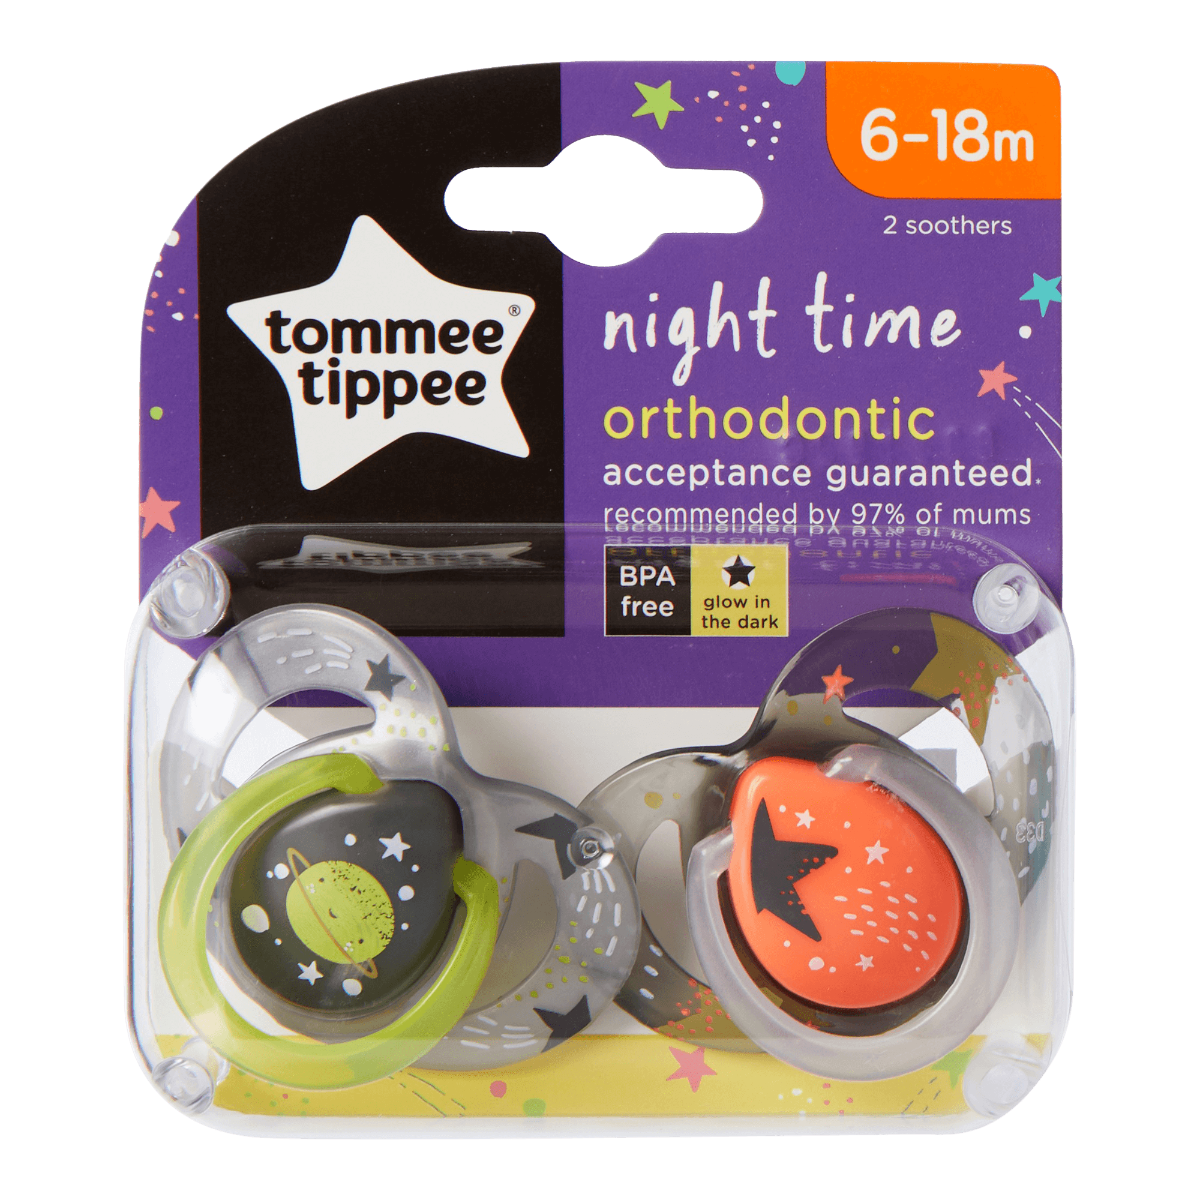 green-and-orange-night-soothers-in-packaging